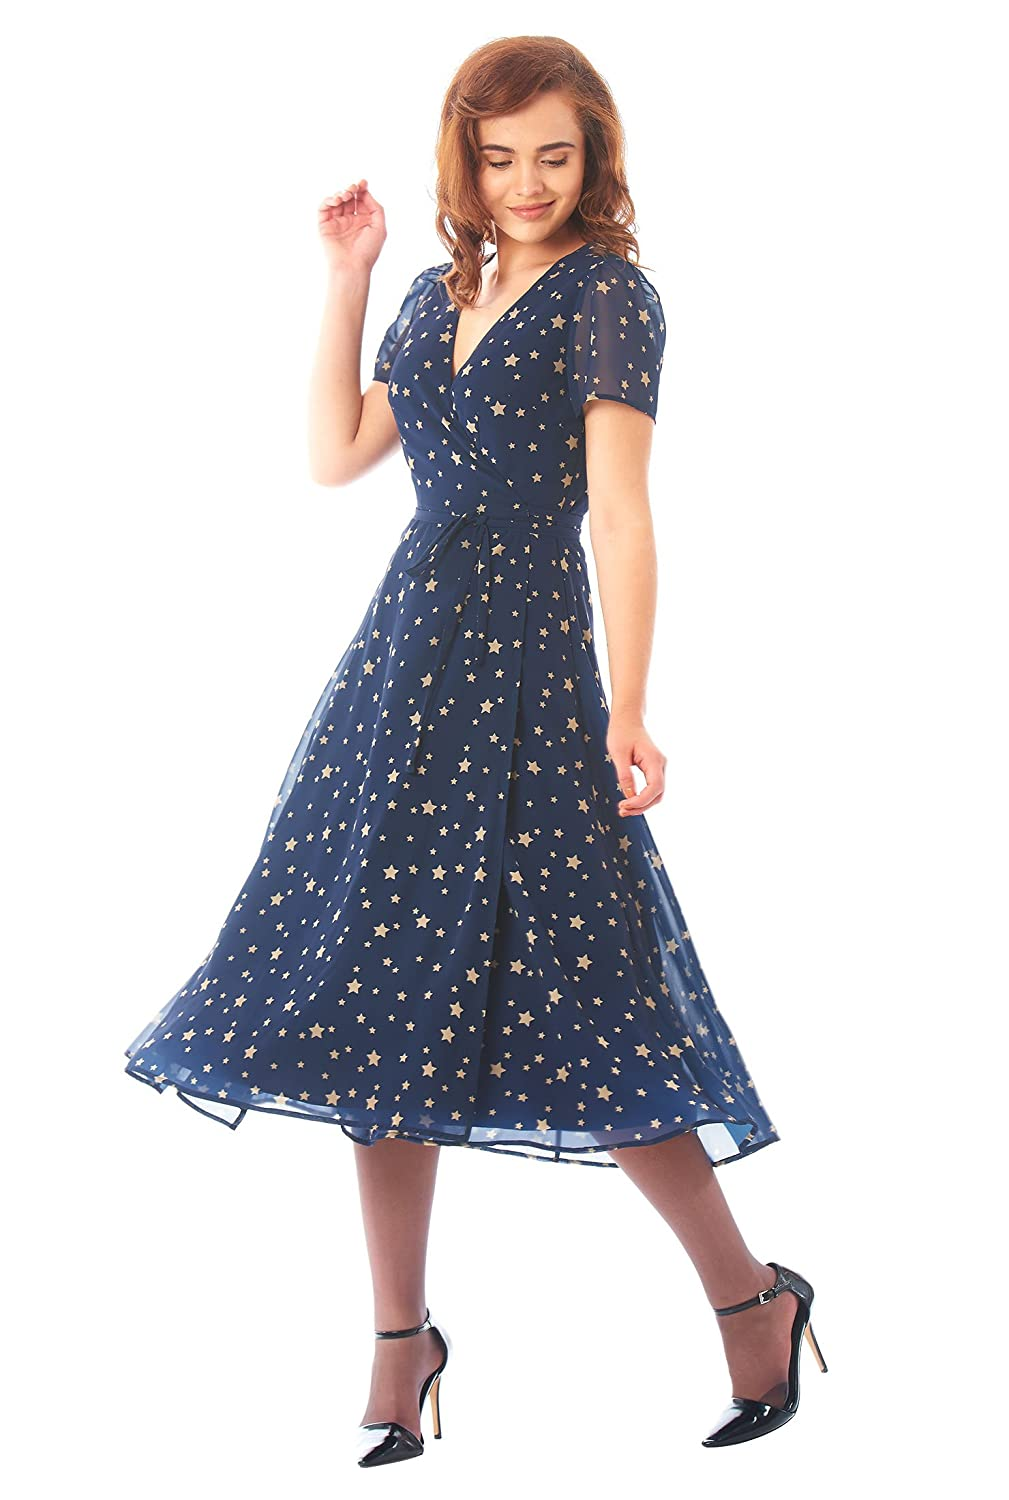 1950s Dresses, 50s Dresses | 1950s Style Dresses eShakti Womens Star Print Georgette midi wrap Dress $64.95 AT vintagedancer.com